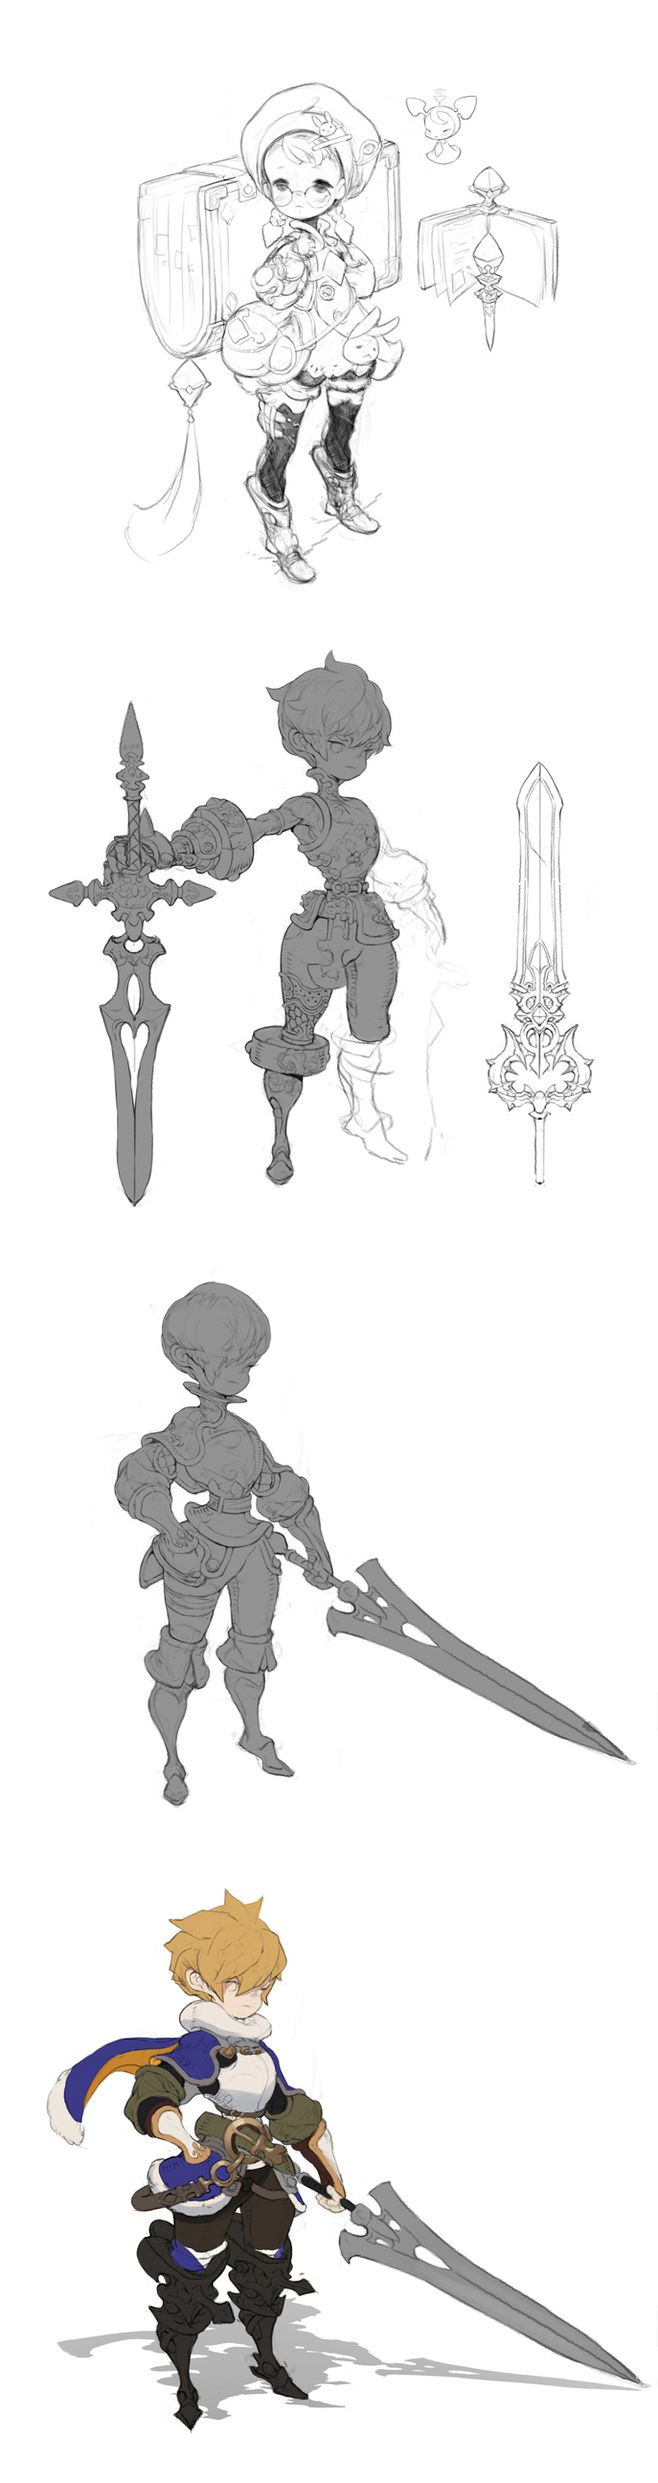 ★ || CHARACTER DESIGN REFERENCES™ (https://www.facebook.com/CharacterDesignReferences & https://www.pinterest.com/characterdesigh) • Love Character Design? Join the #CDChallenge (link→ https://www.facebook.com/groups/CharacterDesignChallenge) Share your unique vision of a theme, promote your art in a community of over 100.000 artists! || ★